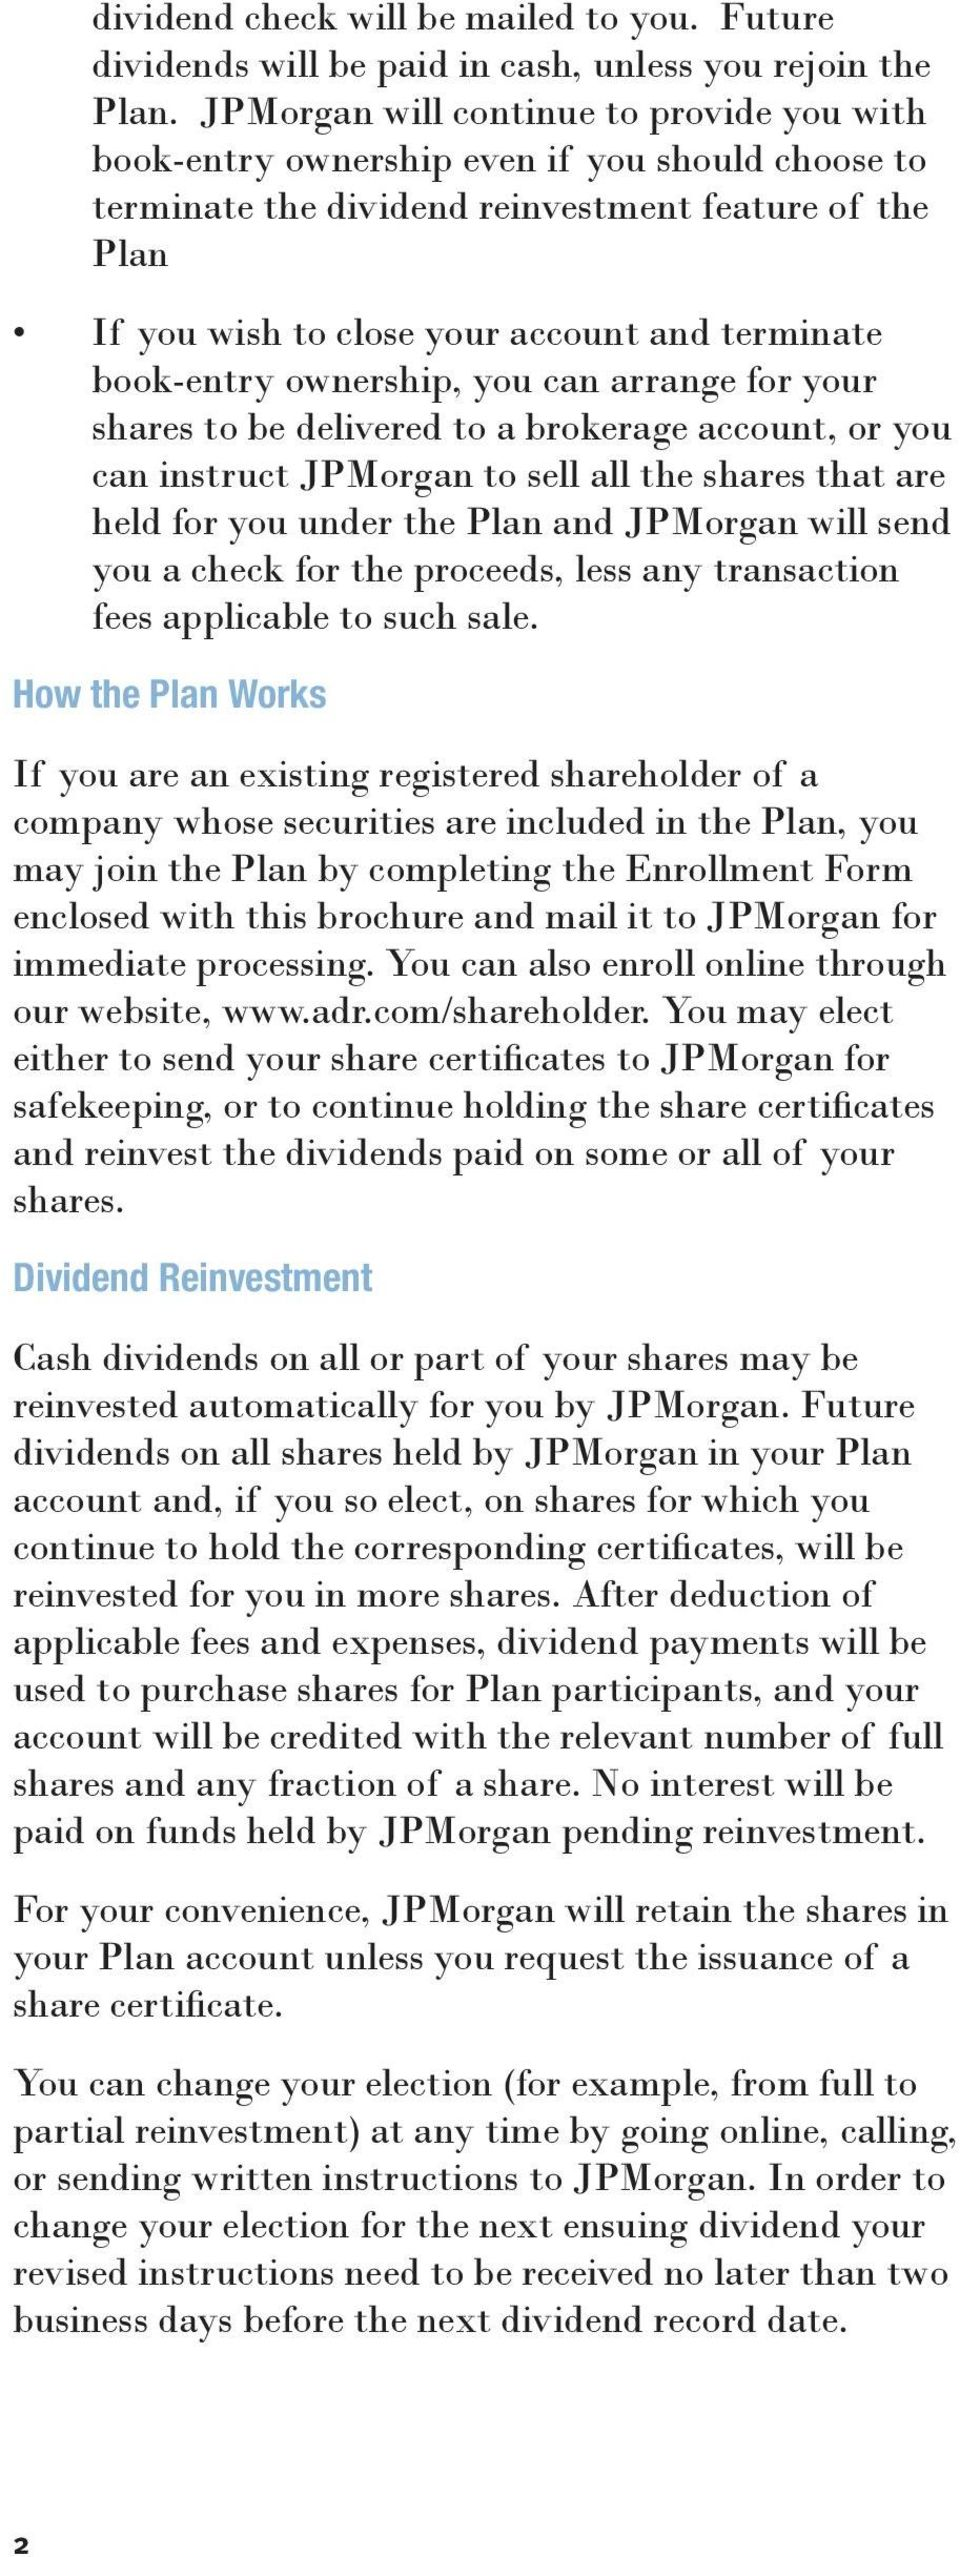 book-entry ownership, you can arrange for your shares to be delivered to a brokerage account, or you can instruct JPMorgan to sell all the shares that are held for you under the Plan and JPMorgan